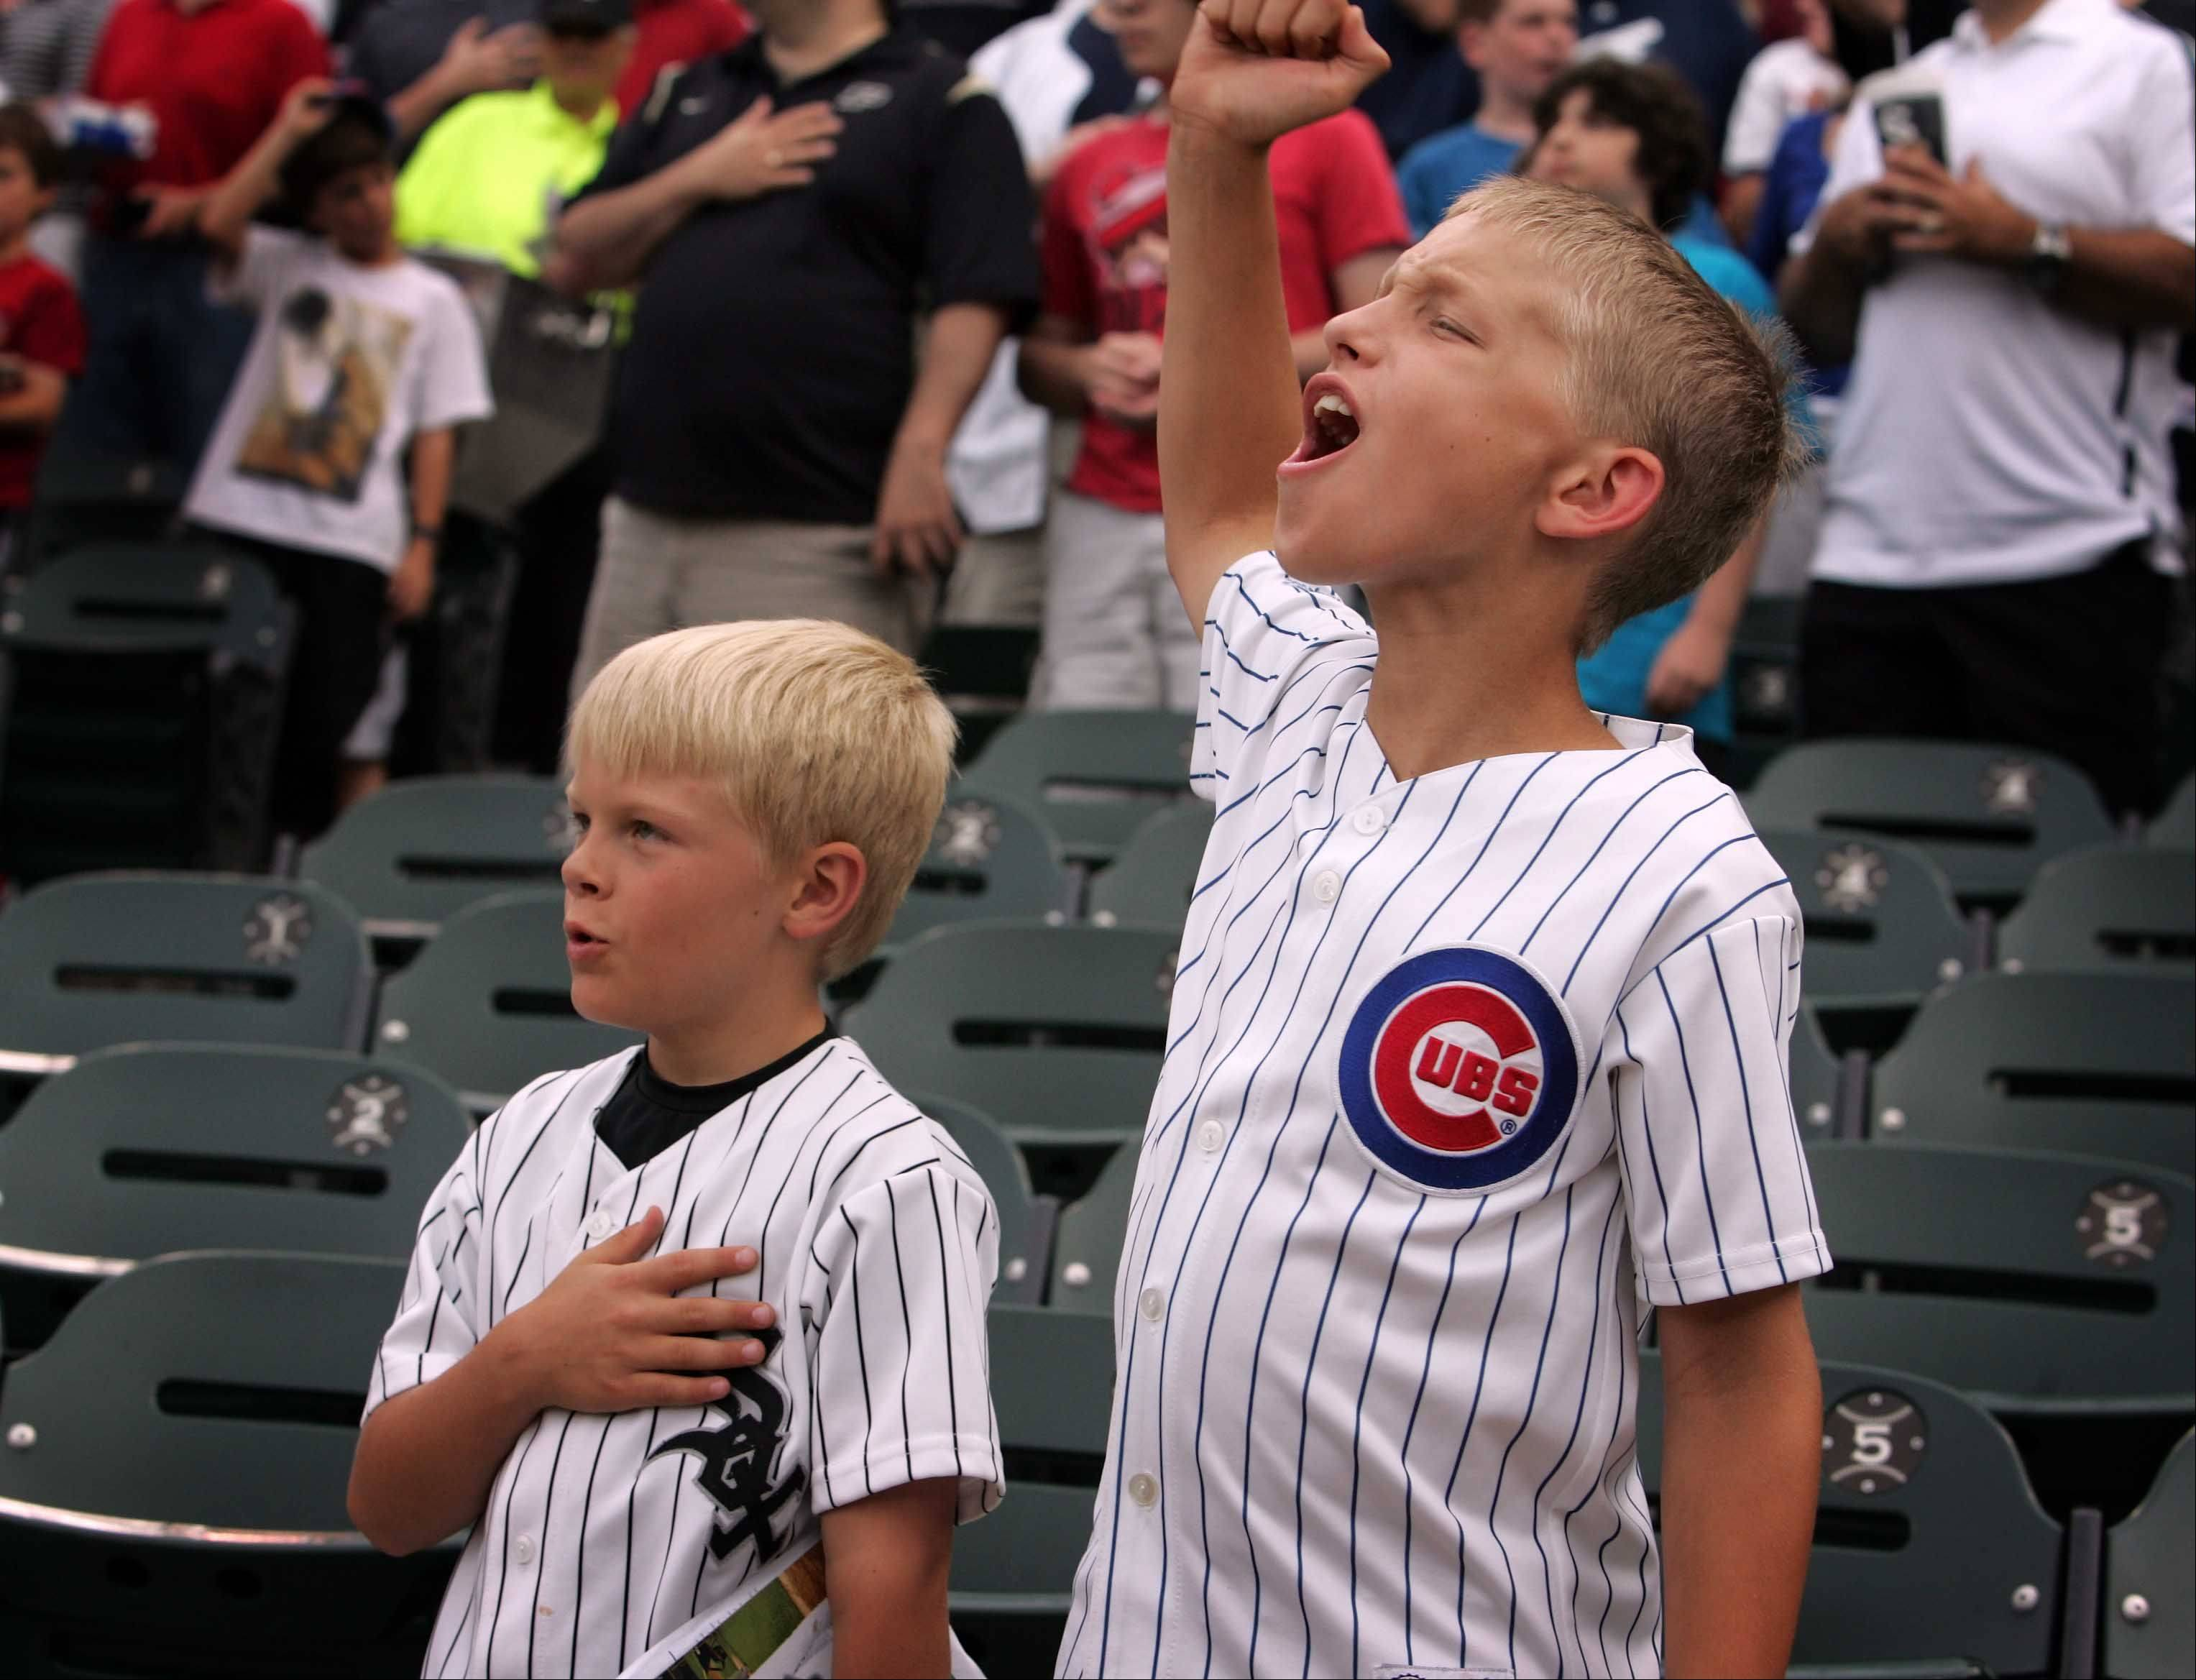 Naperville neighbors Jack Considine, 9, left, and Mark Gronowski, 9, cheer at the start of the Chicago Cubs and Chicago White Sox game Monday. This is the second game they have attended together.